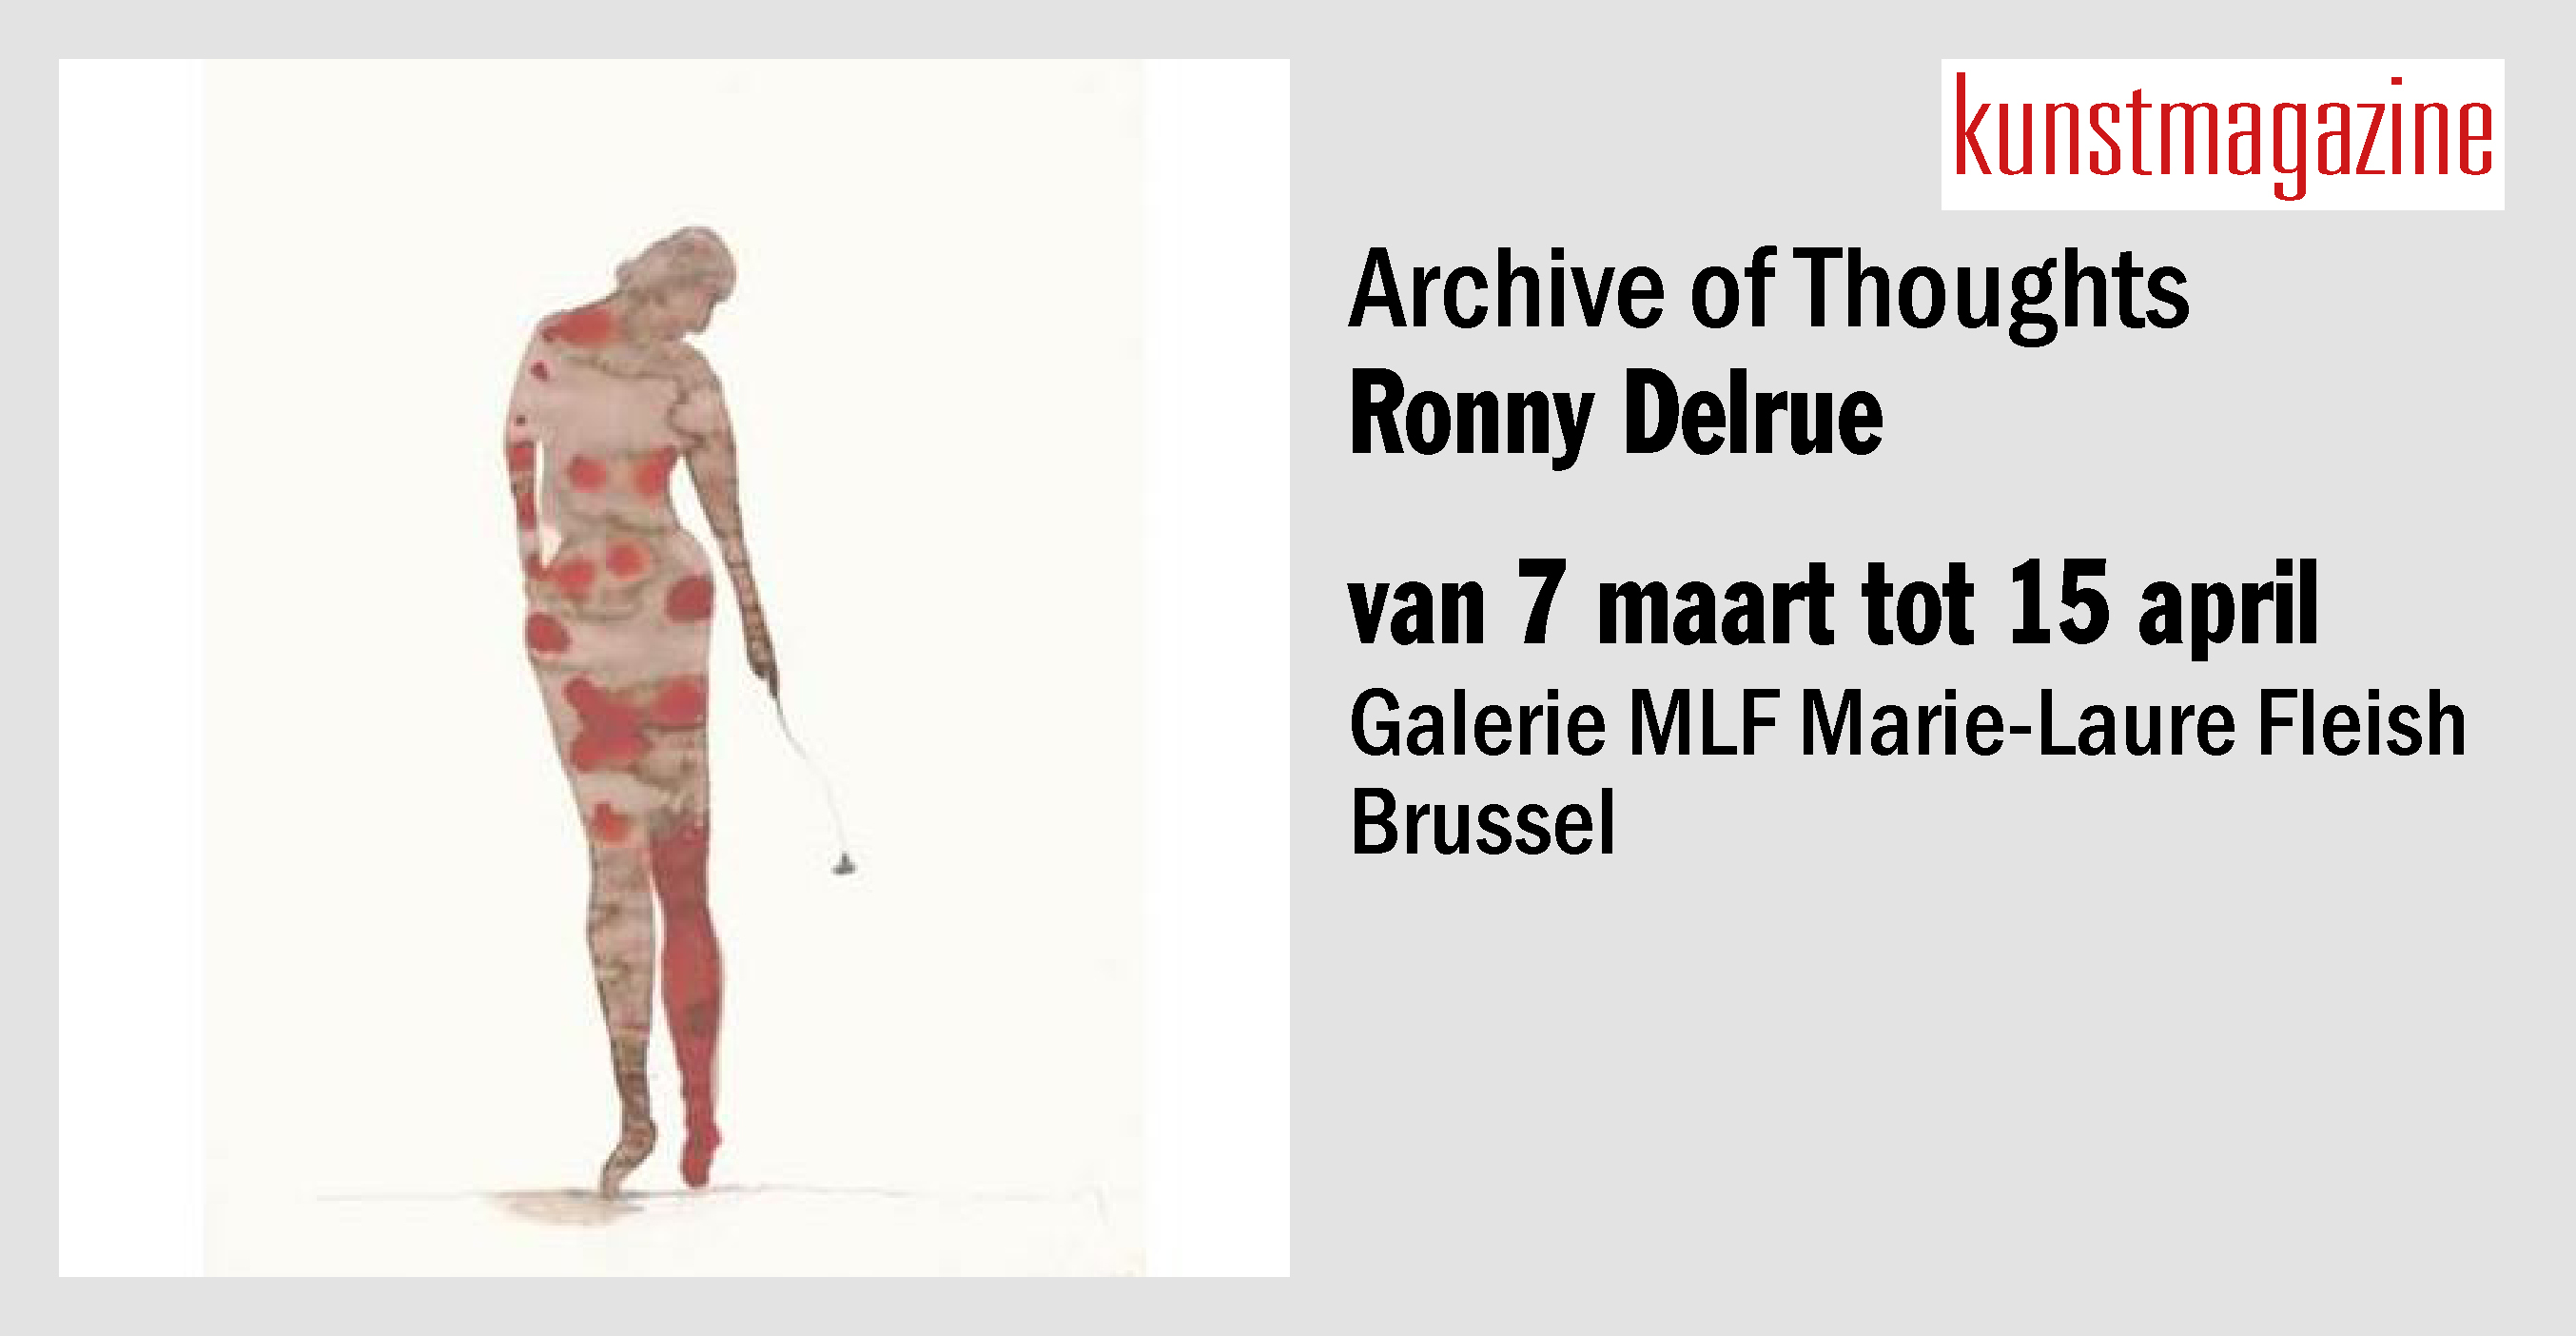 RONNY DELRUE Archive of Thoughts